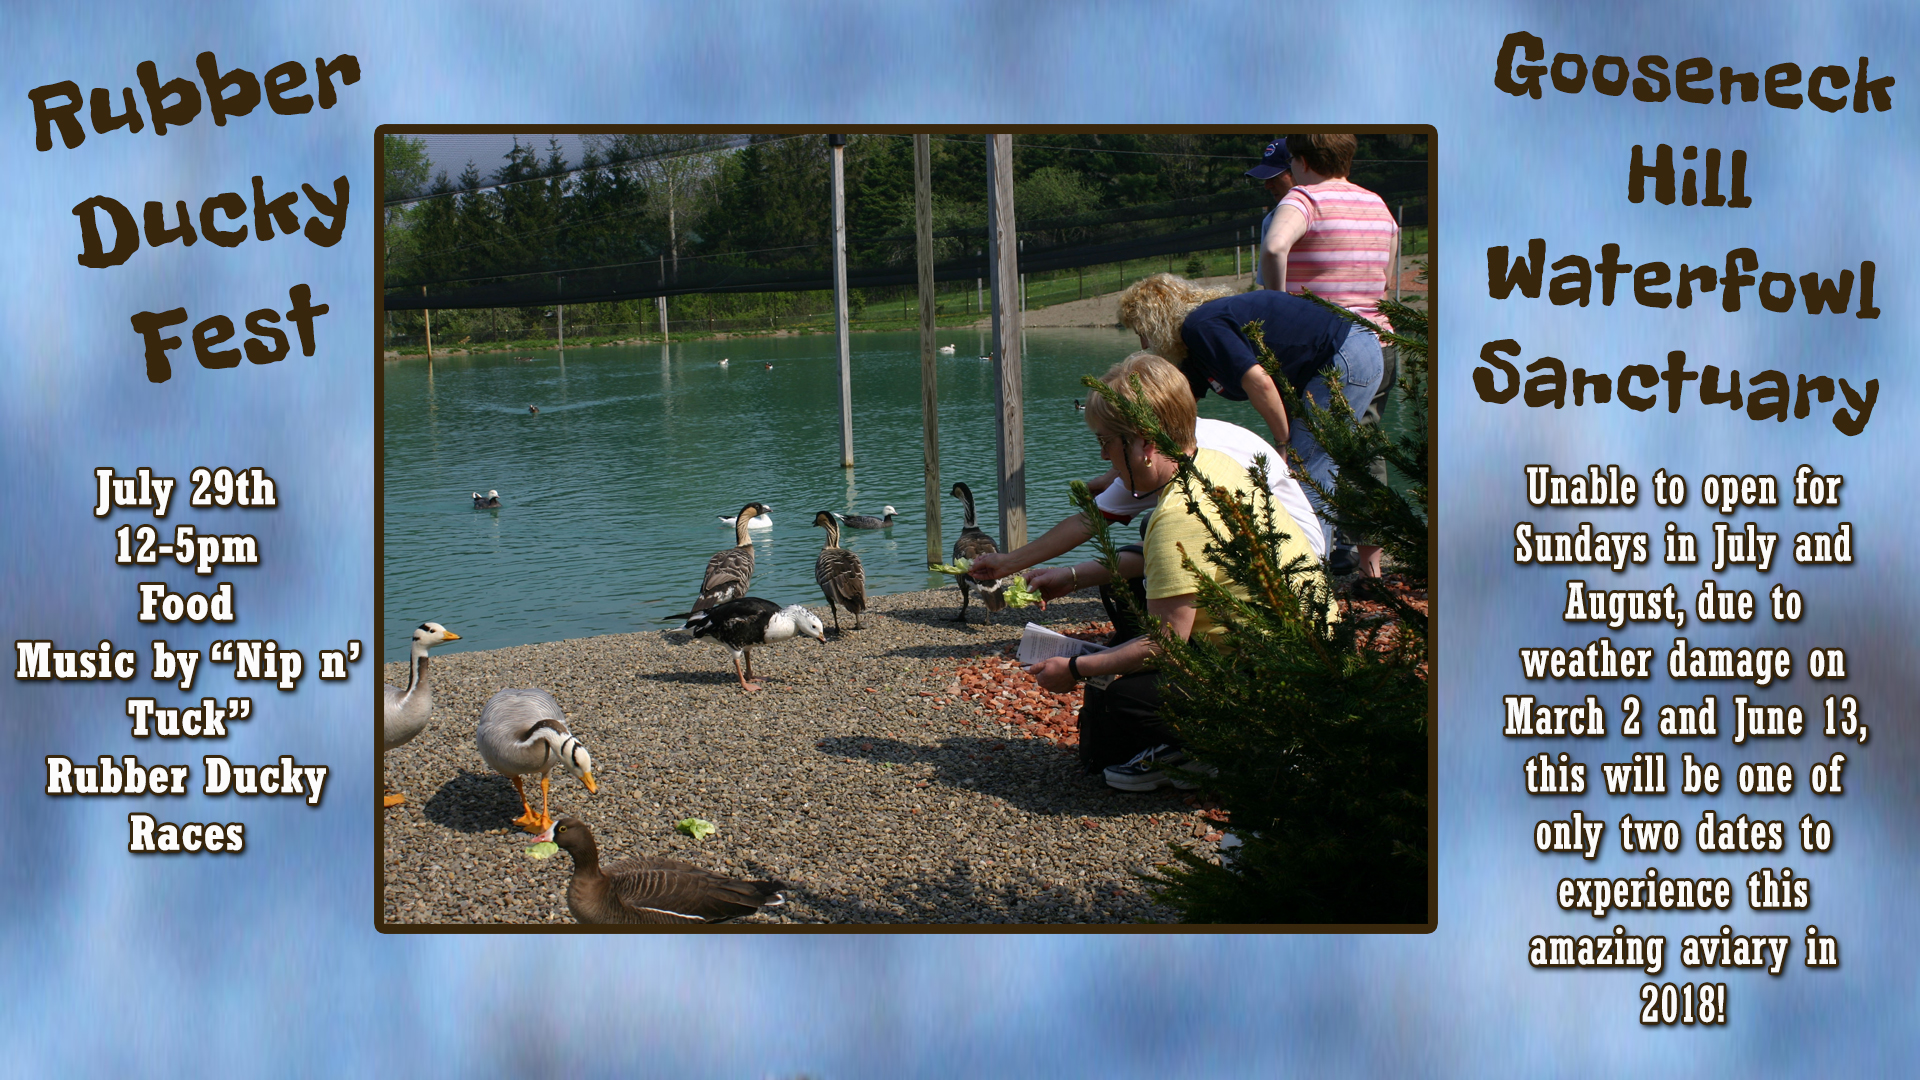 2018 Rubber Ducky Fest at Gooseneck Hill Waterfowl Sanctuary